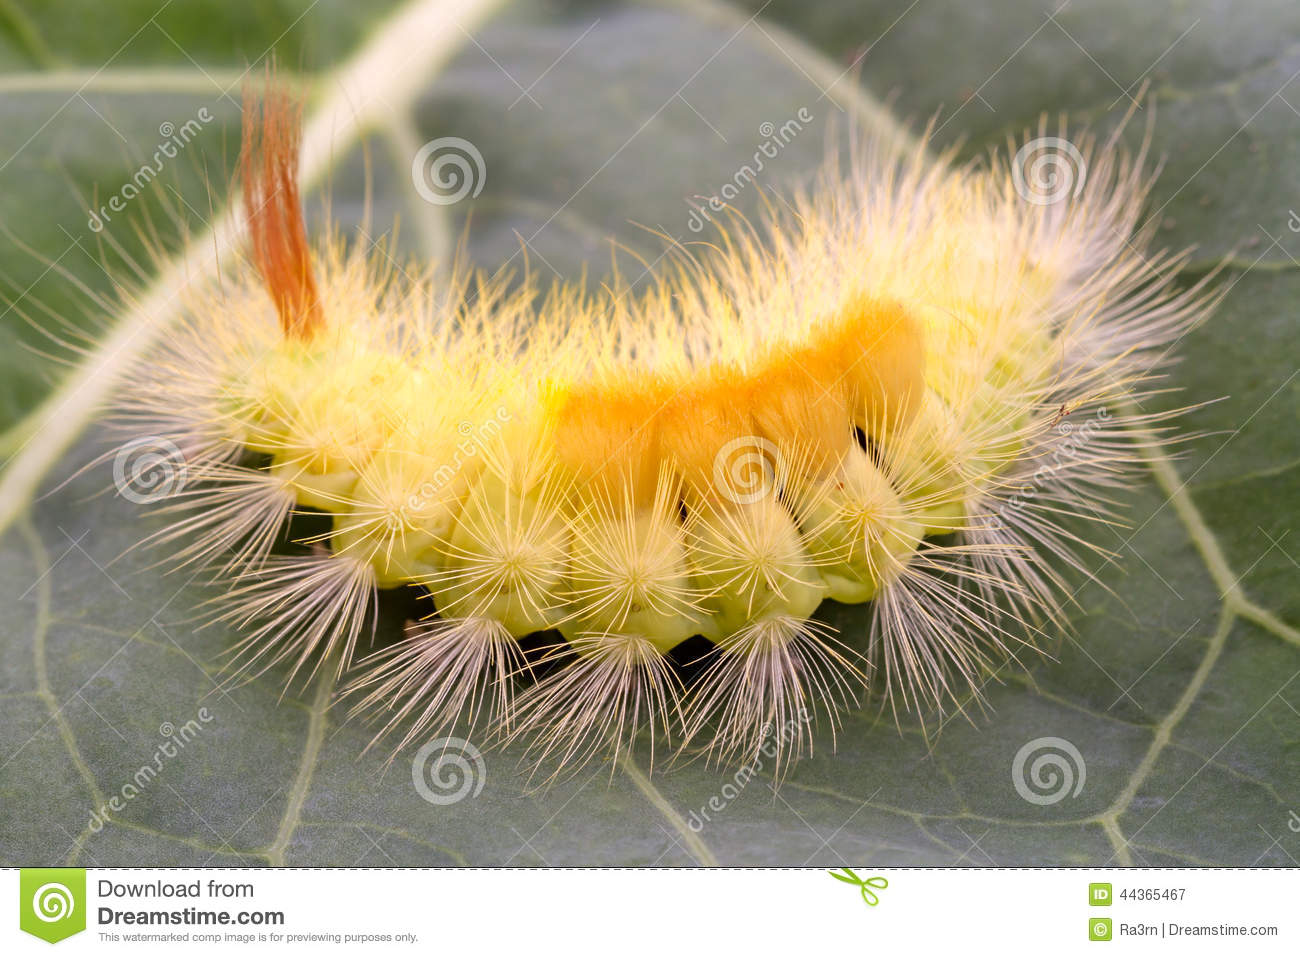 Splitz.......mmmmmm Love green hairy caterpillar babe